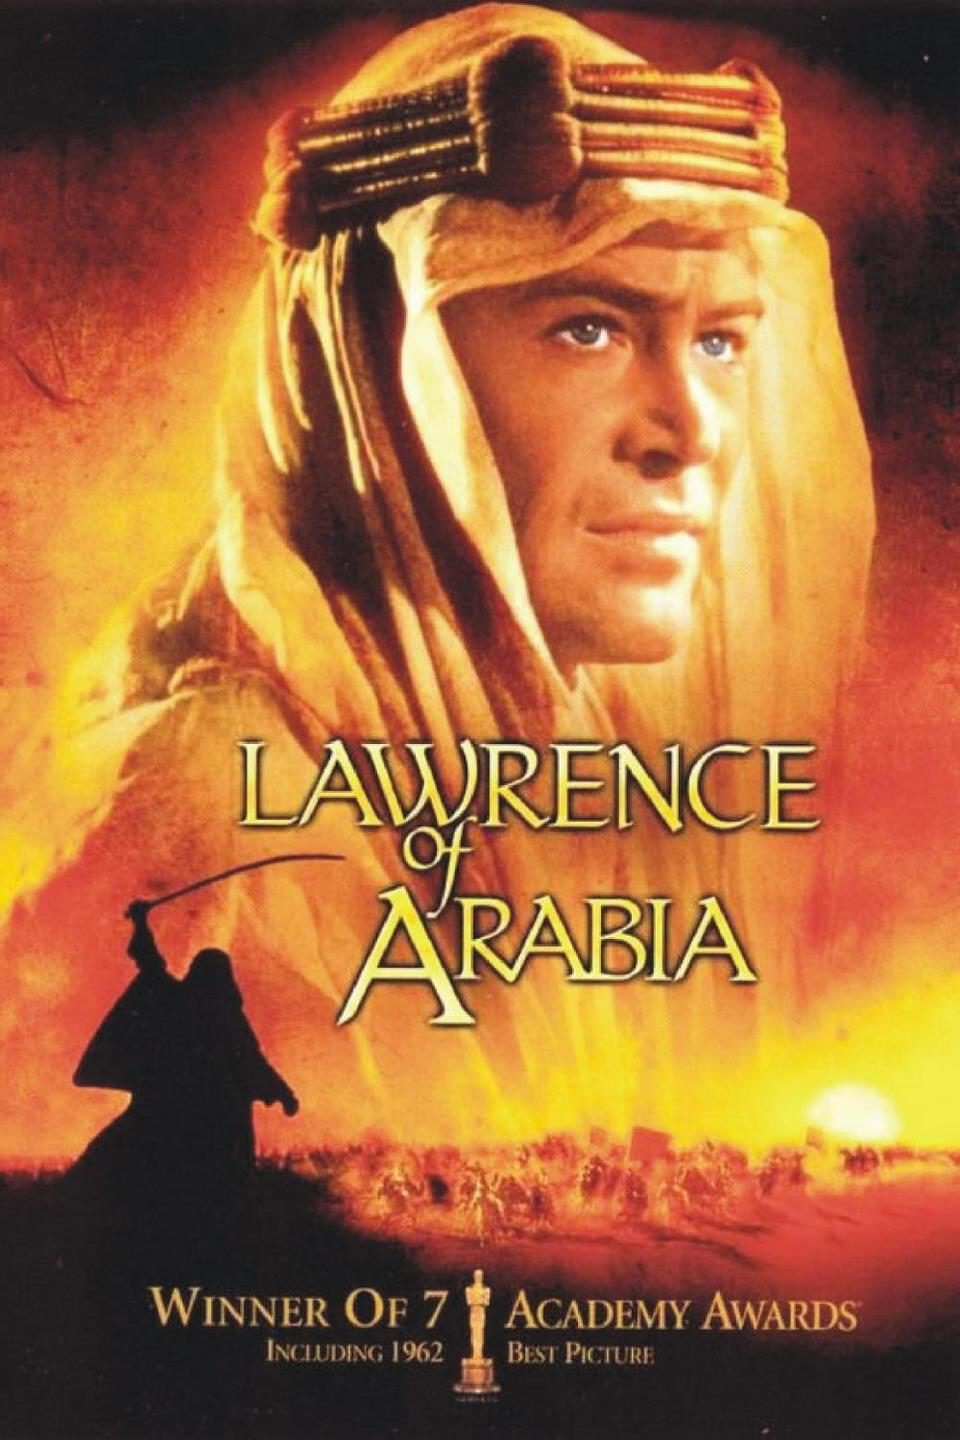 Image result for lawrence of arabia poster